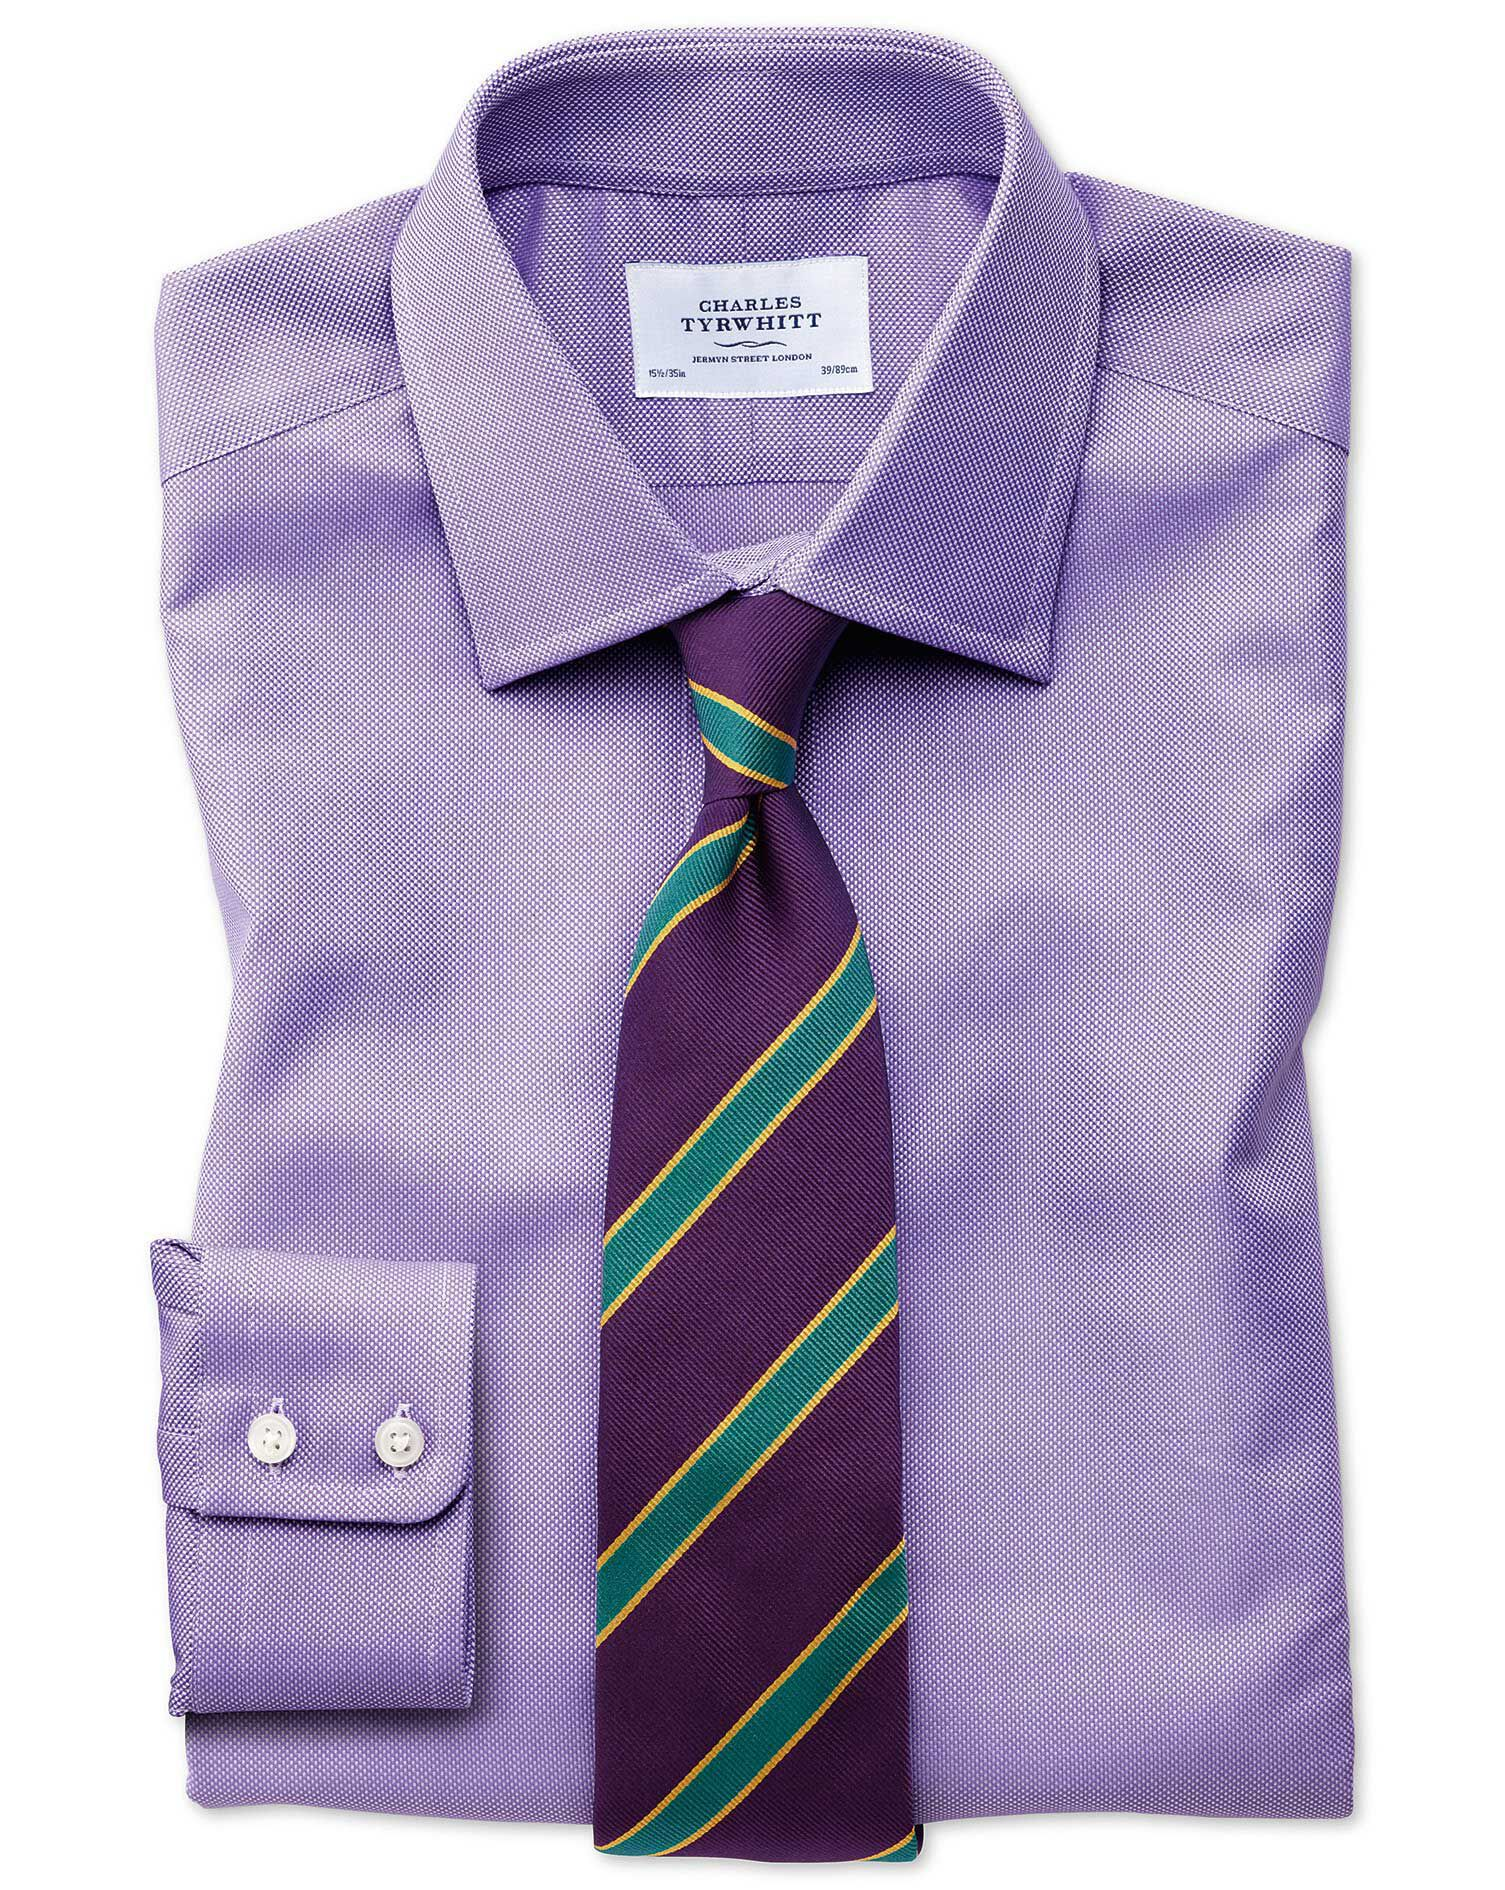 Slim Fit Egyptian Cotton Royal Oxford Lilac Formal Shirt Double Cuff Size 15/34 by Charles Tyrwhitt